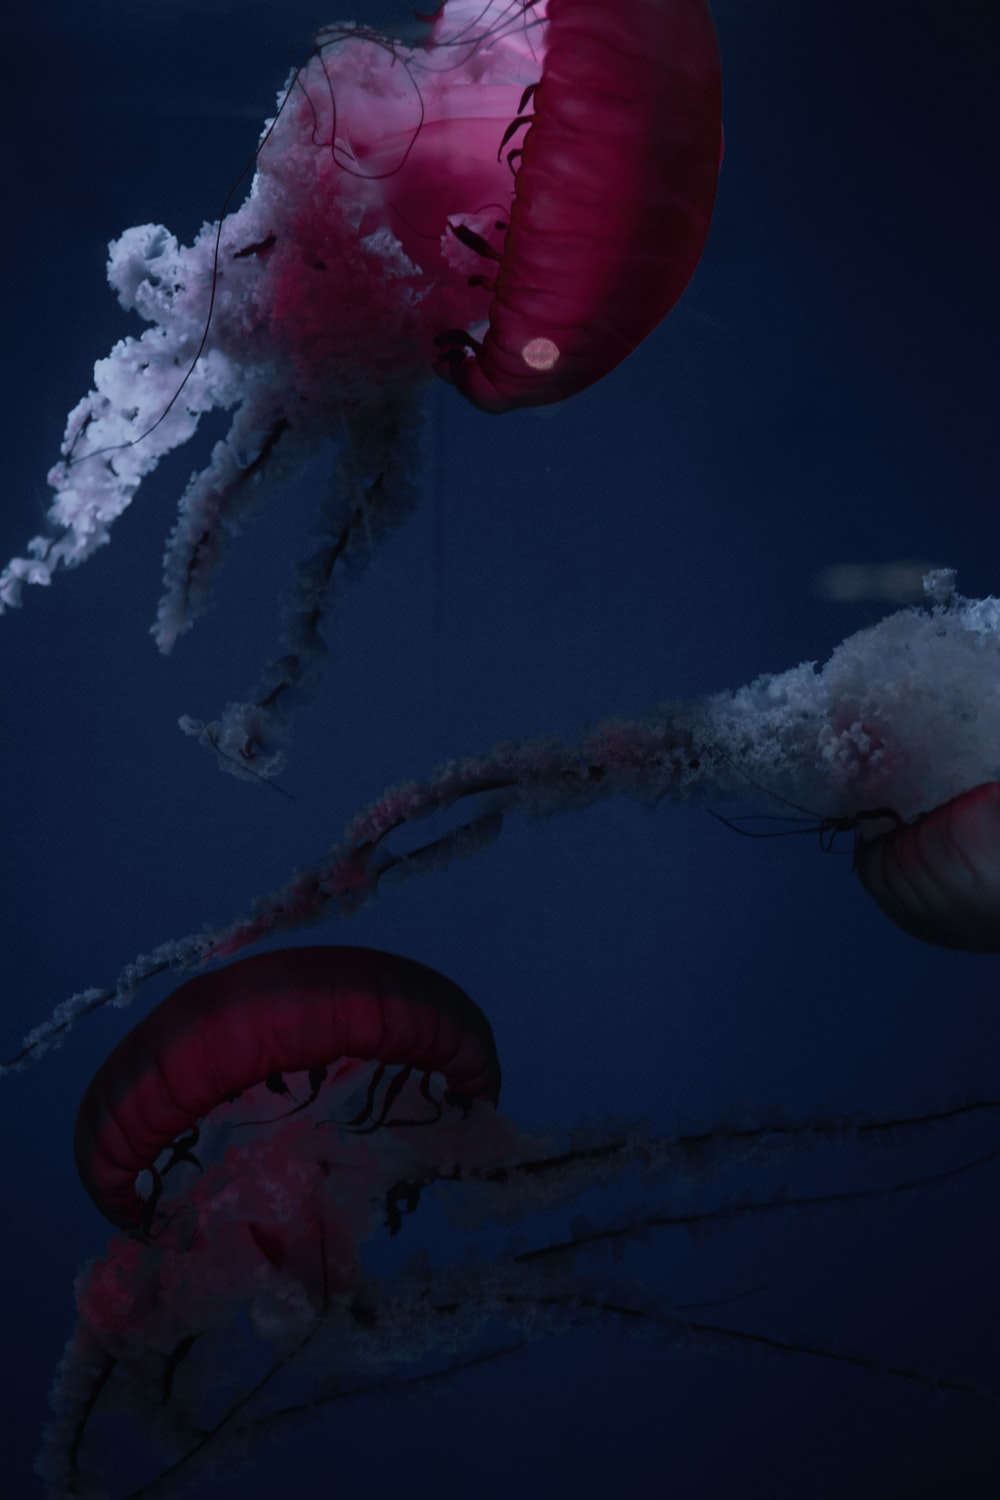 red and white jellyfish under water